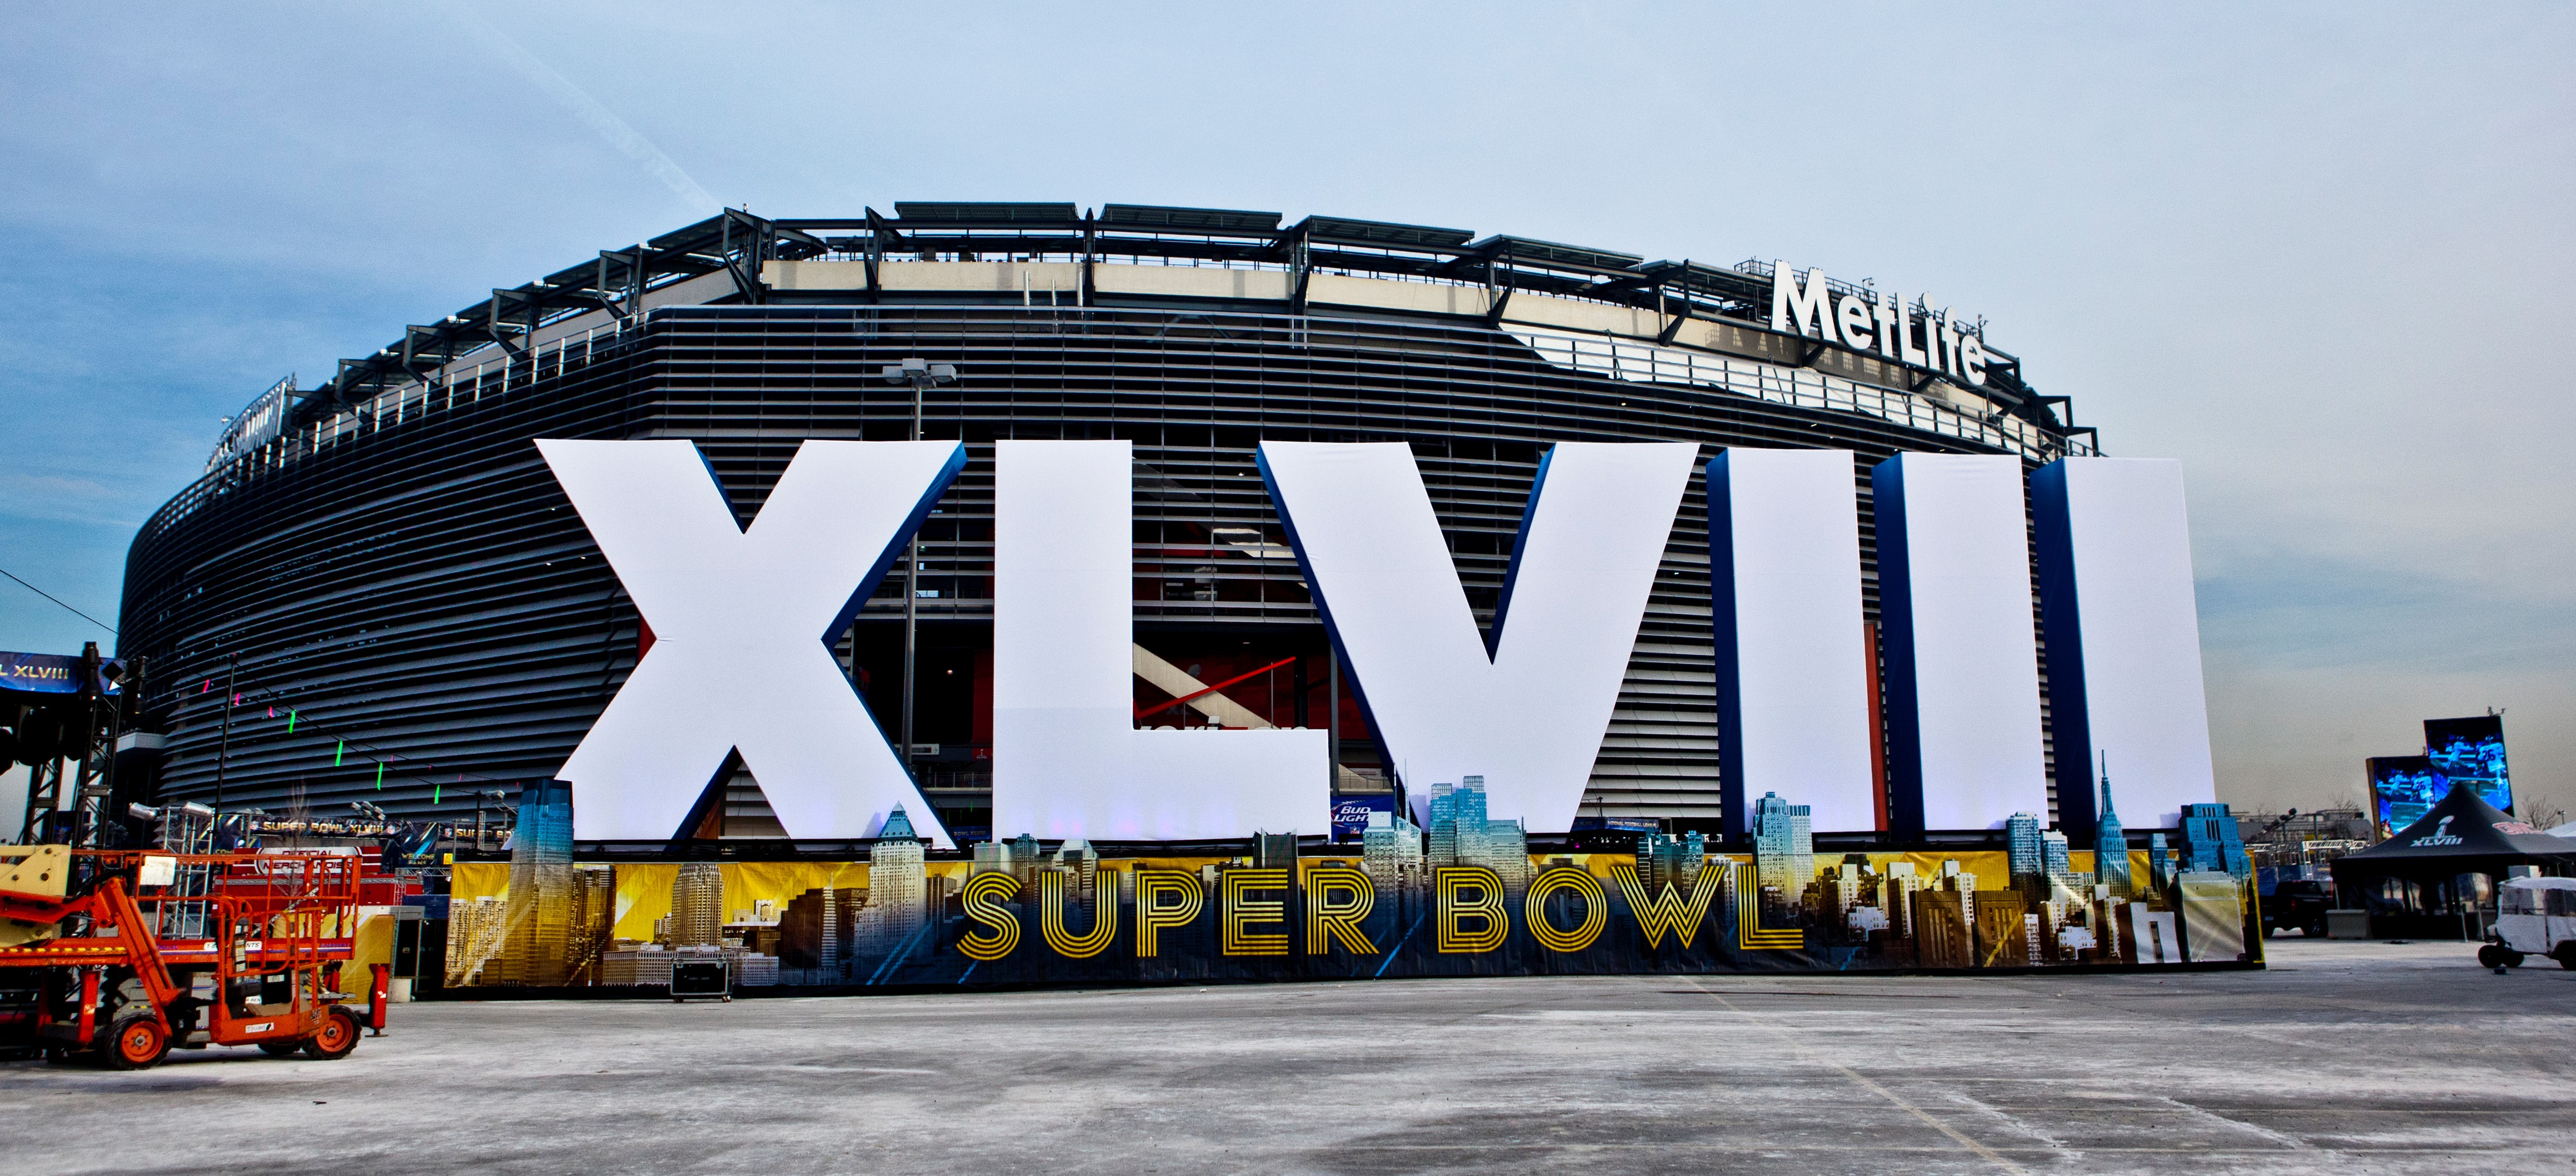 New Jersey Supreme Court rules for NFL in Super Bowl ticket lawsuit